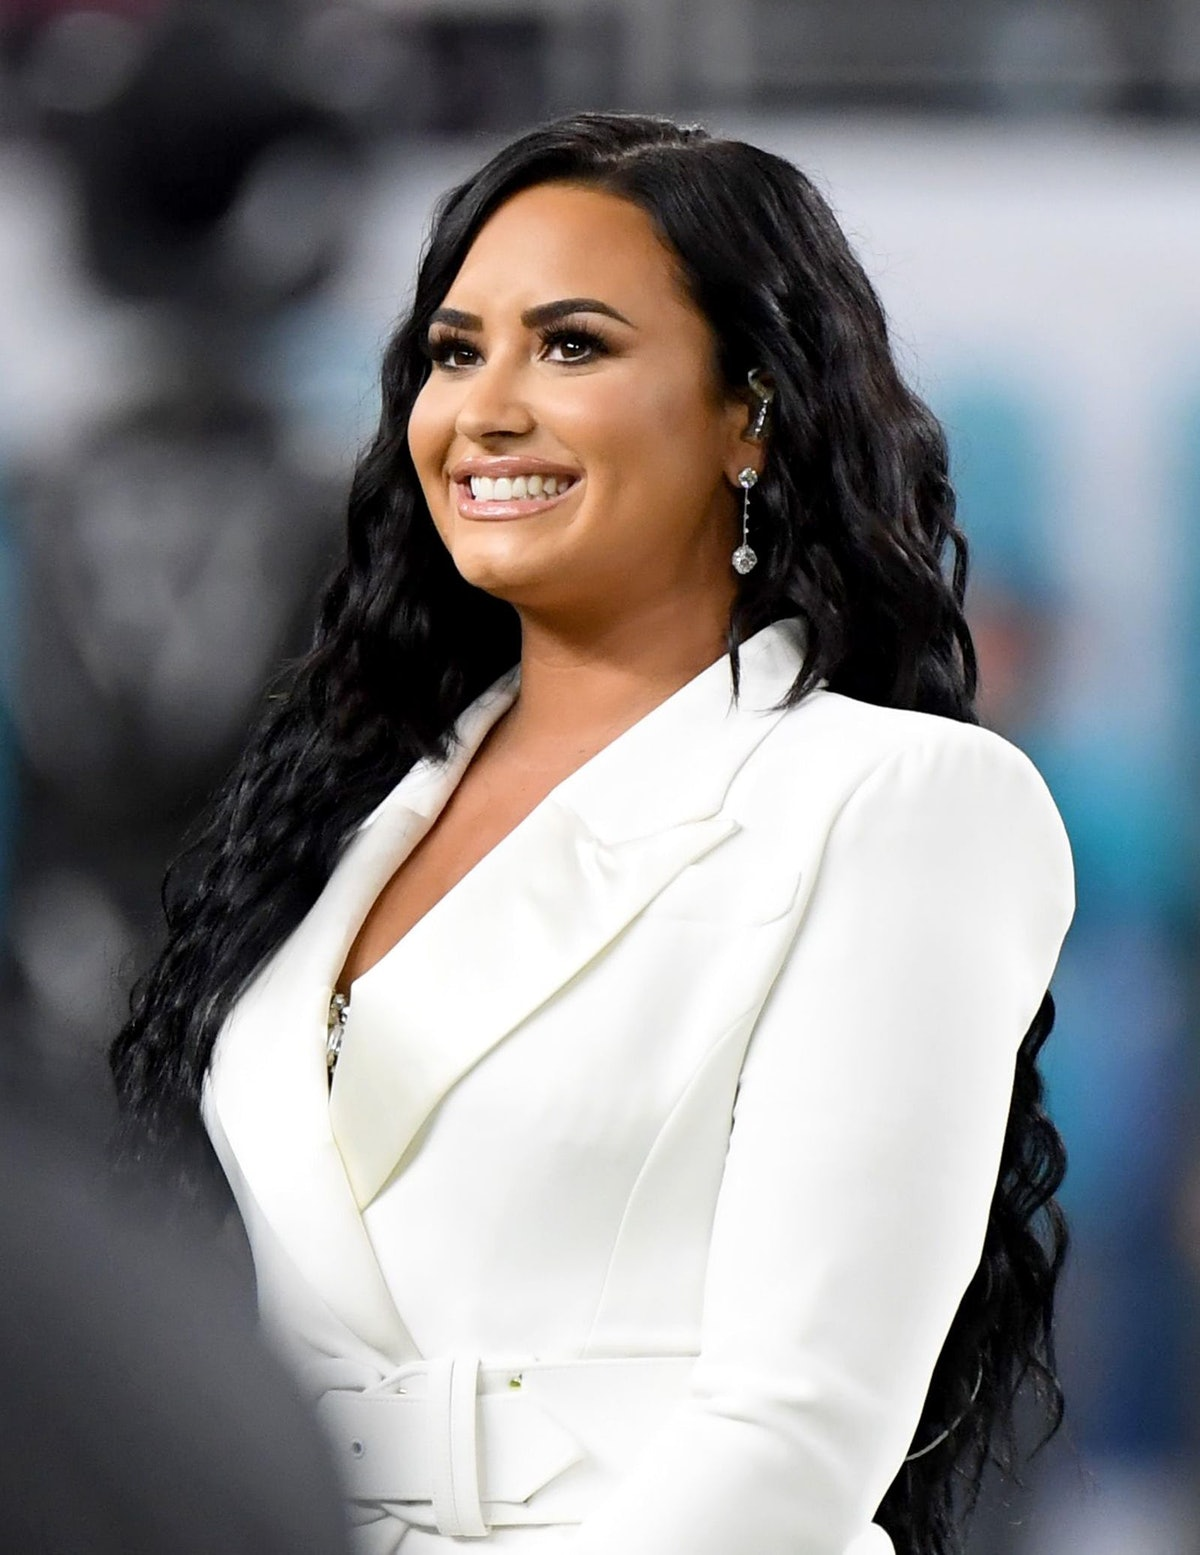 Demi Lovato will open up about her 2018 overdose and her journey towards sobriety in 'Demi Lovato: D...